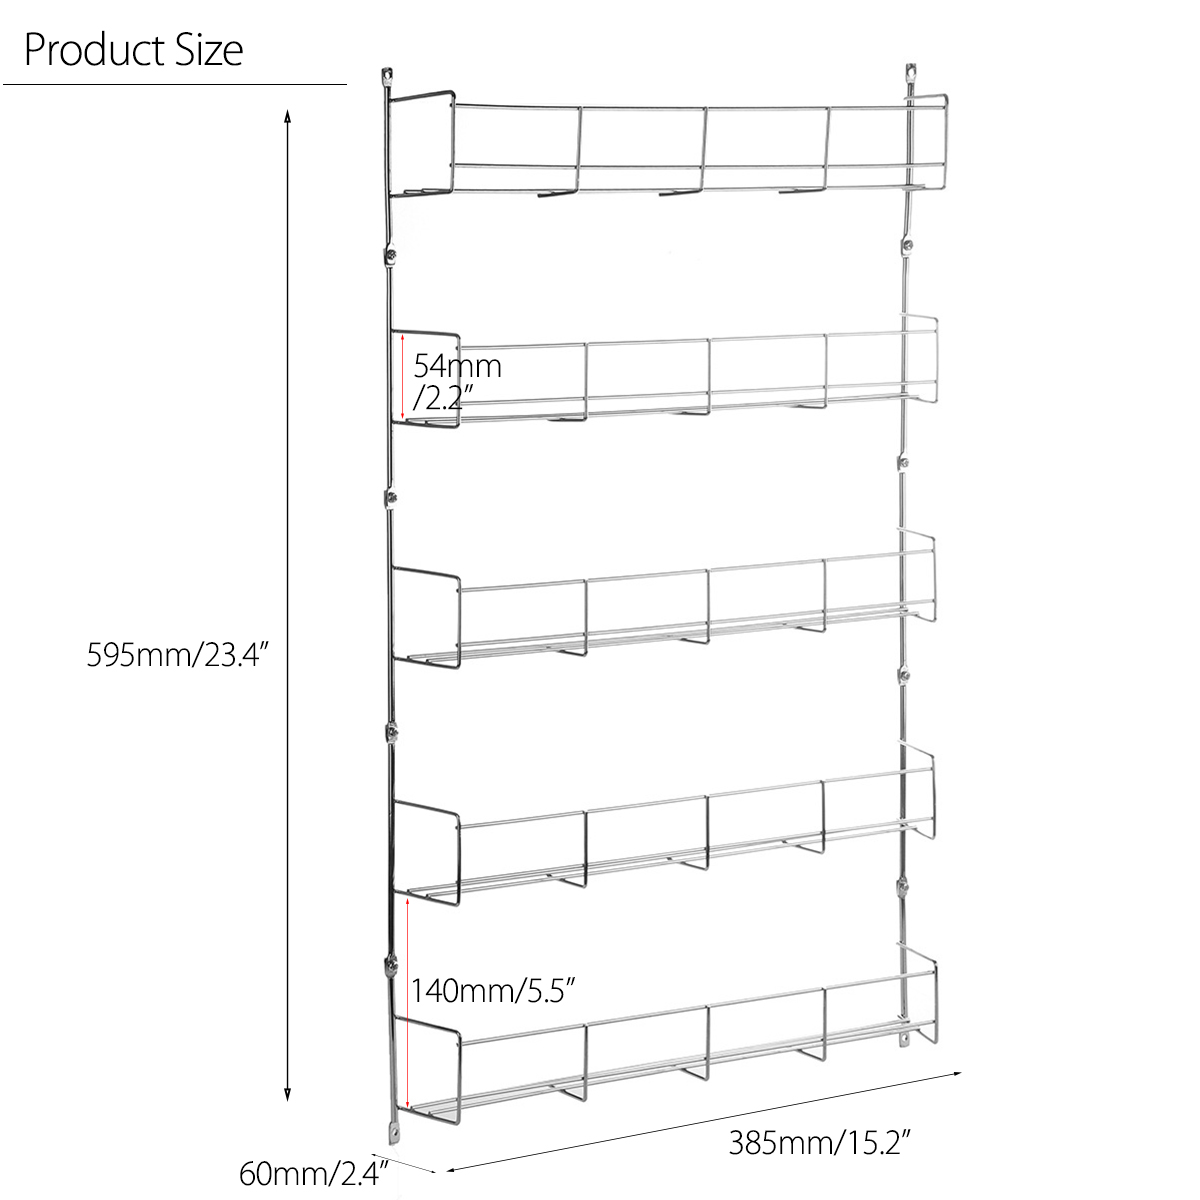 2 3 4 5 6 tag re pices cuisine bouteille support rangement mural placard kit ebay - Rangement placard mural ...